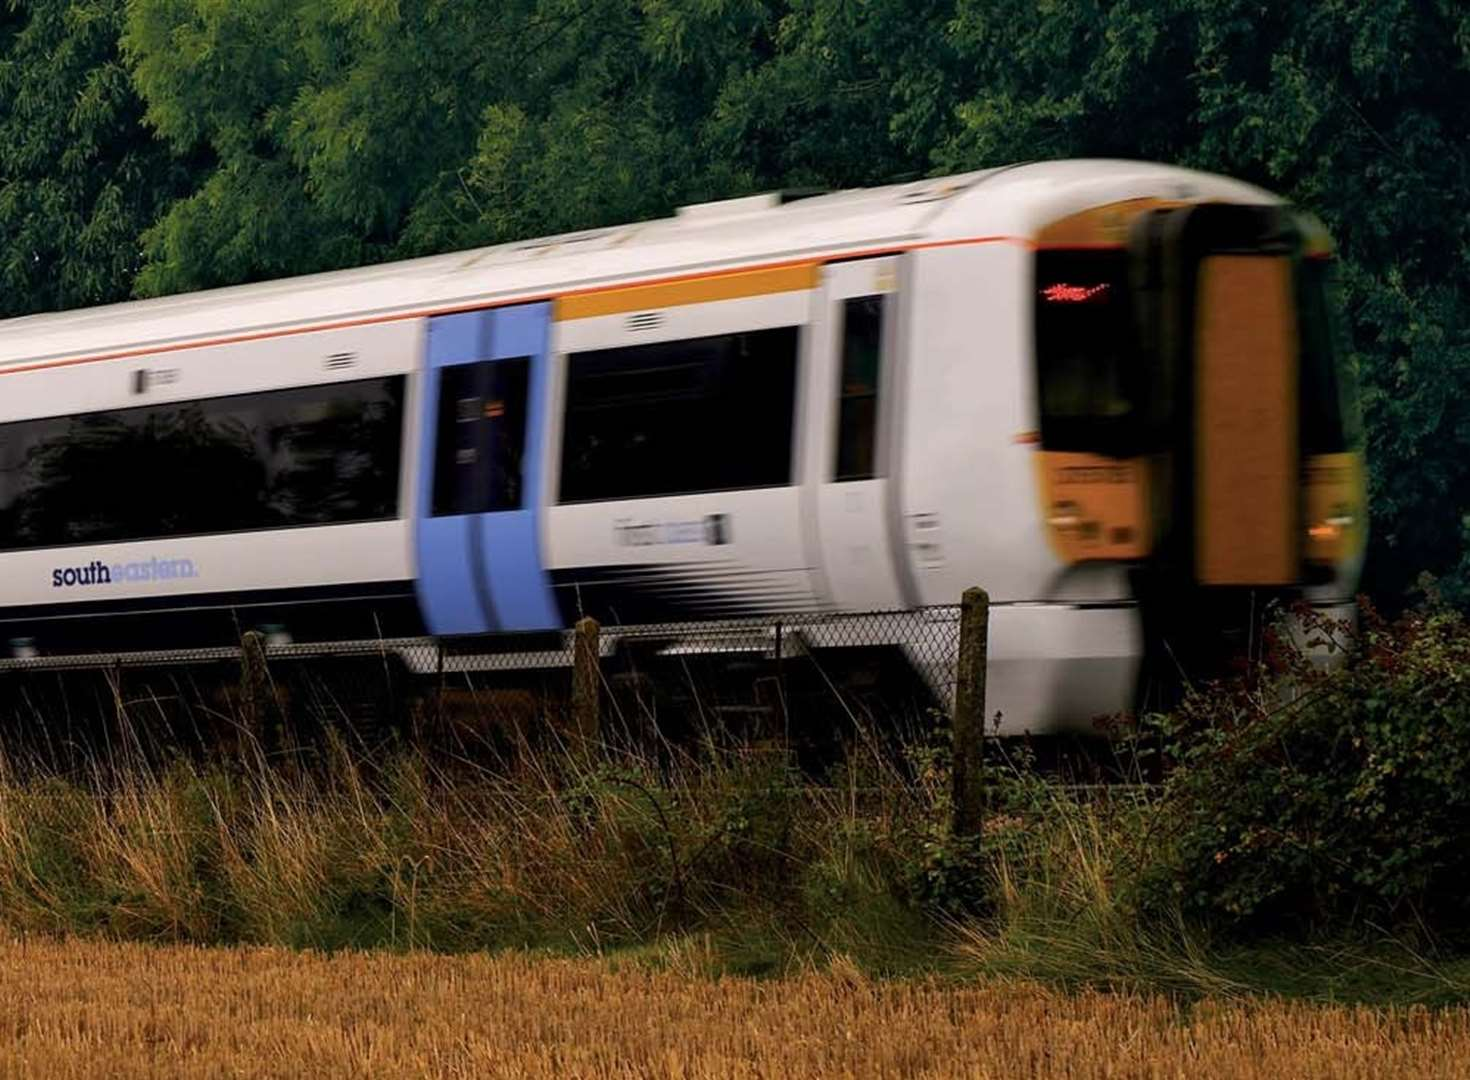 Trains back to normal - but with fewer carriages